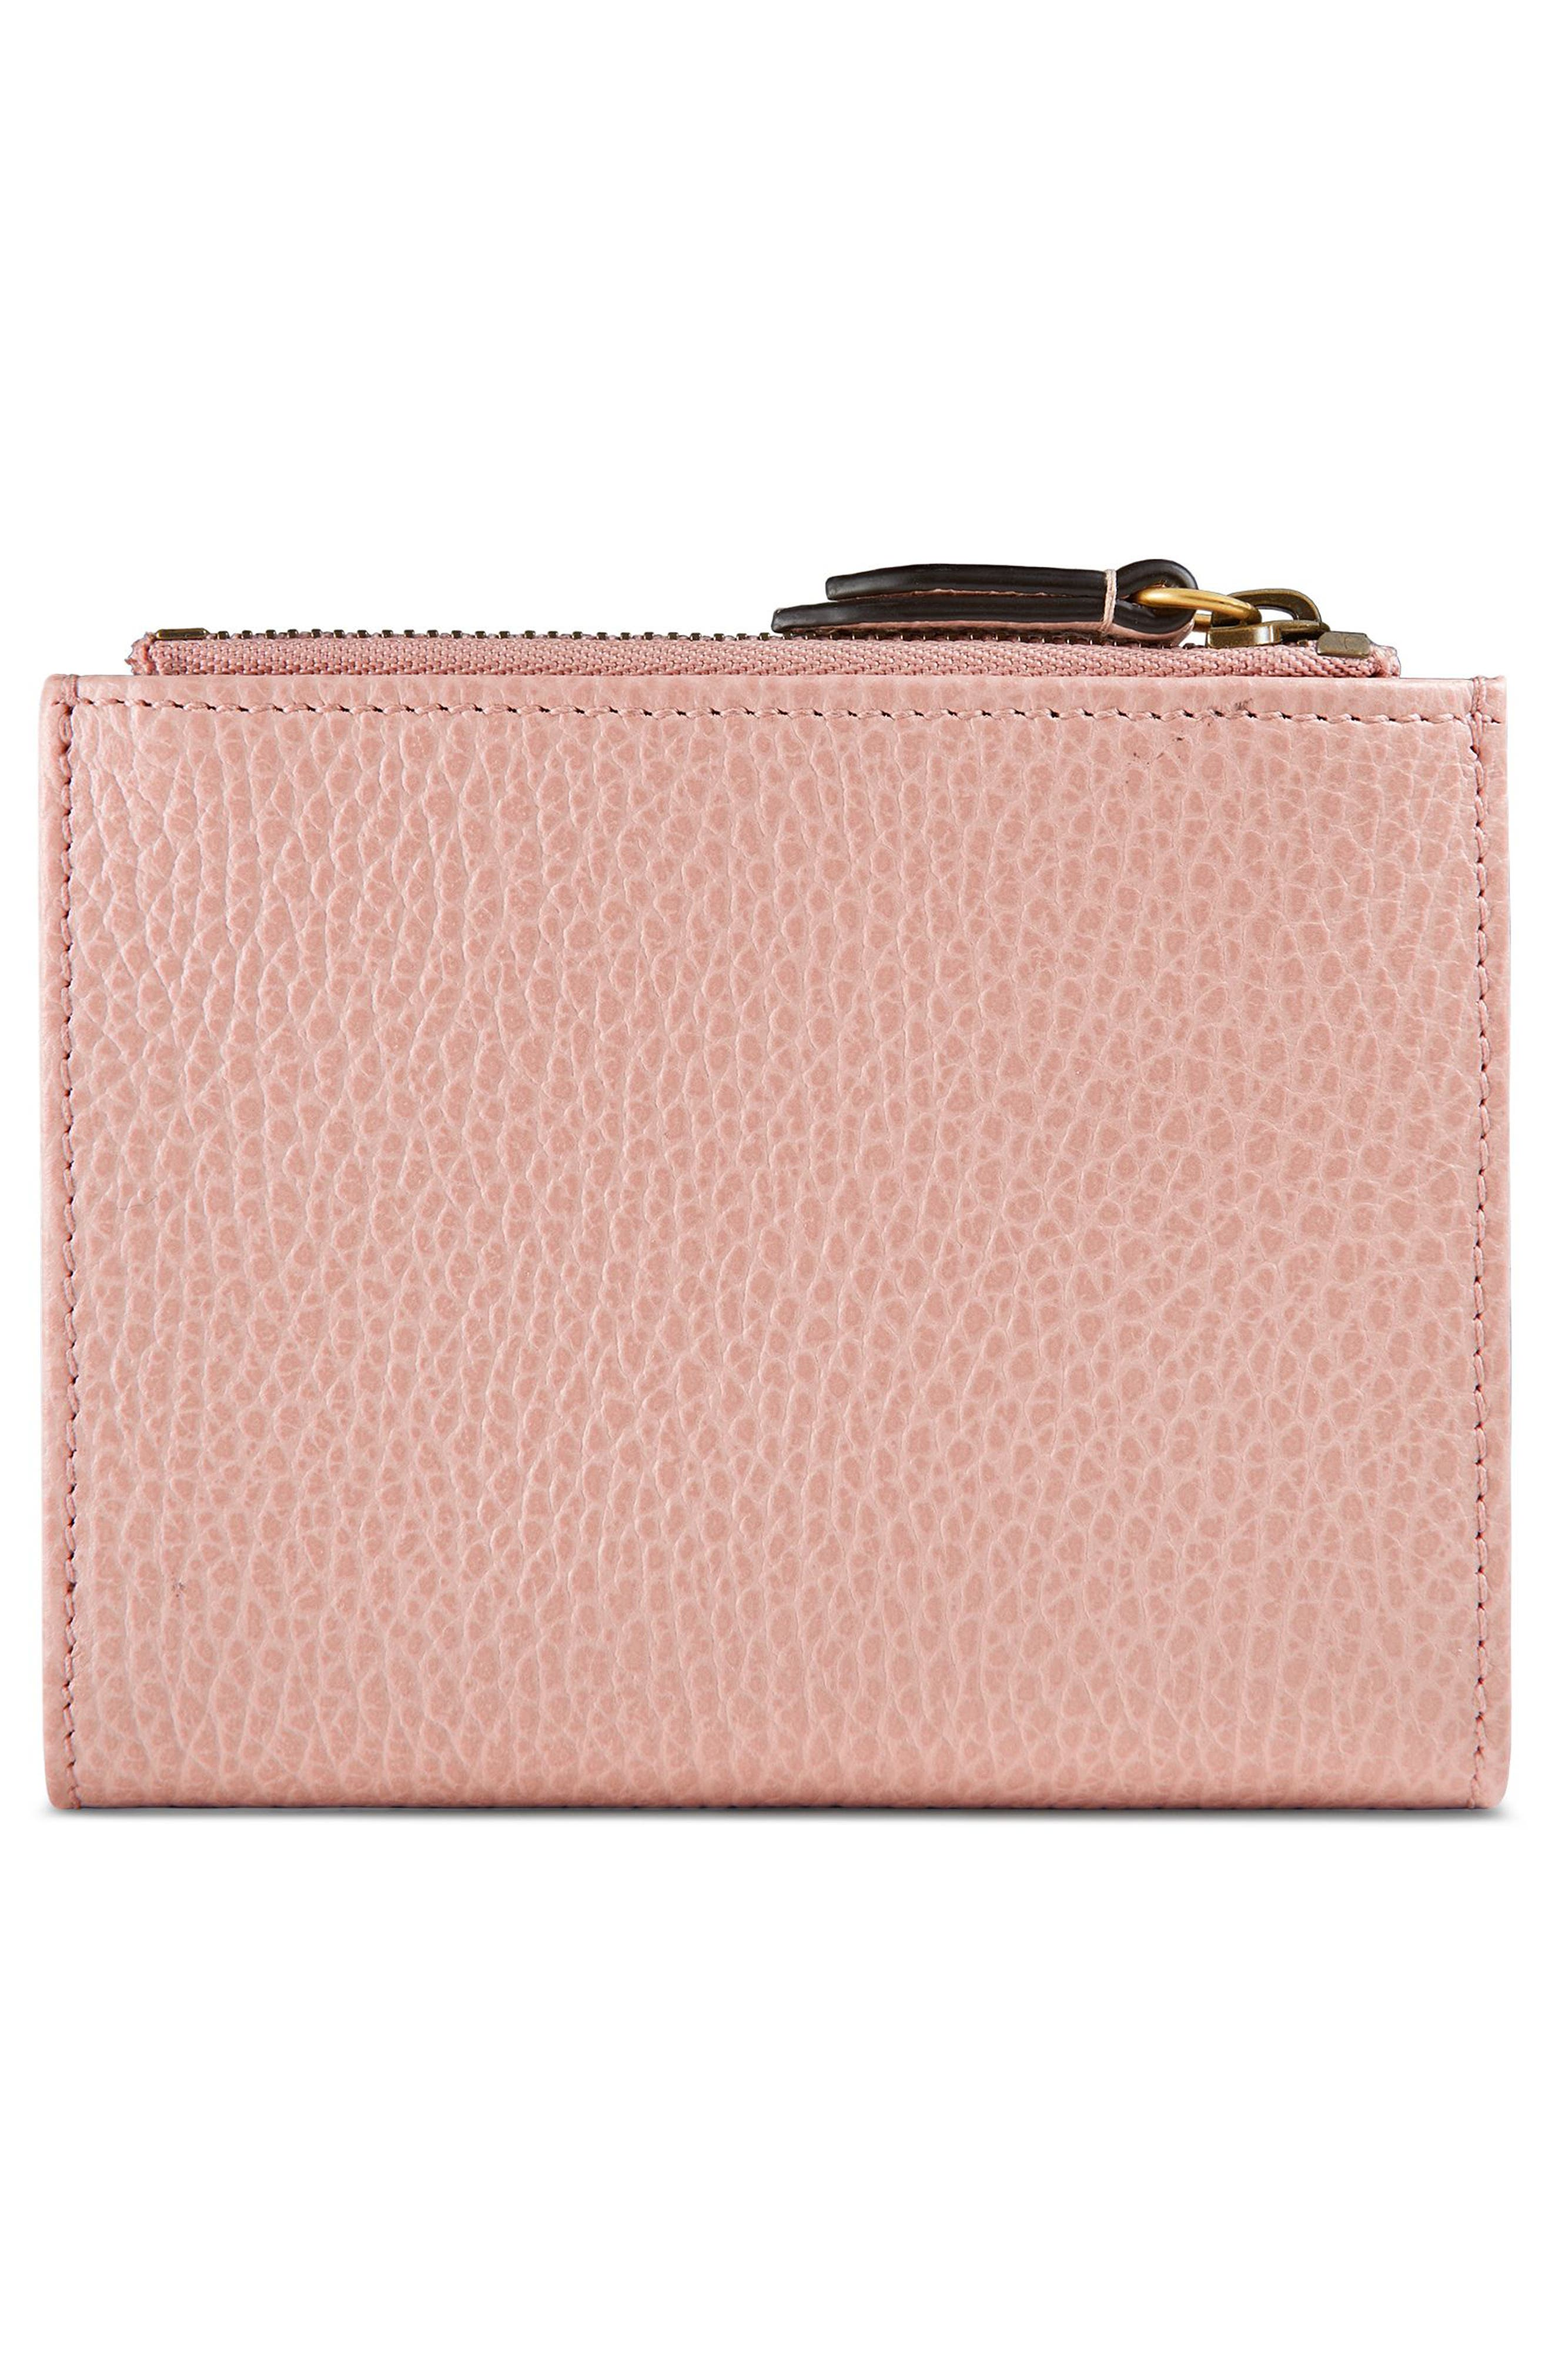 Farfalla Leather Wallet,                             Alternate thumbnail 3, color,                             Perfect Pink/ Crystal